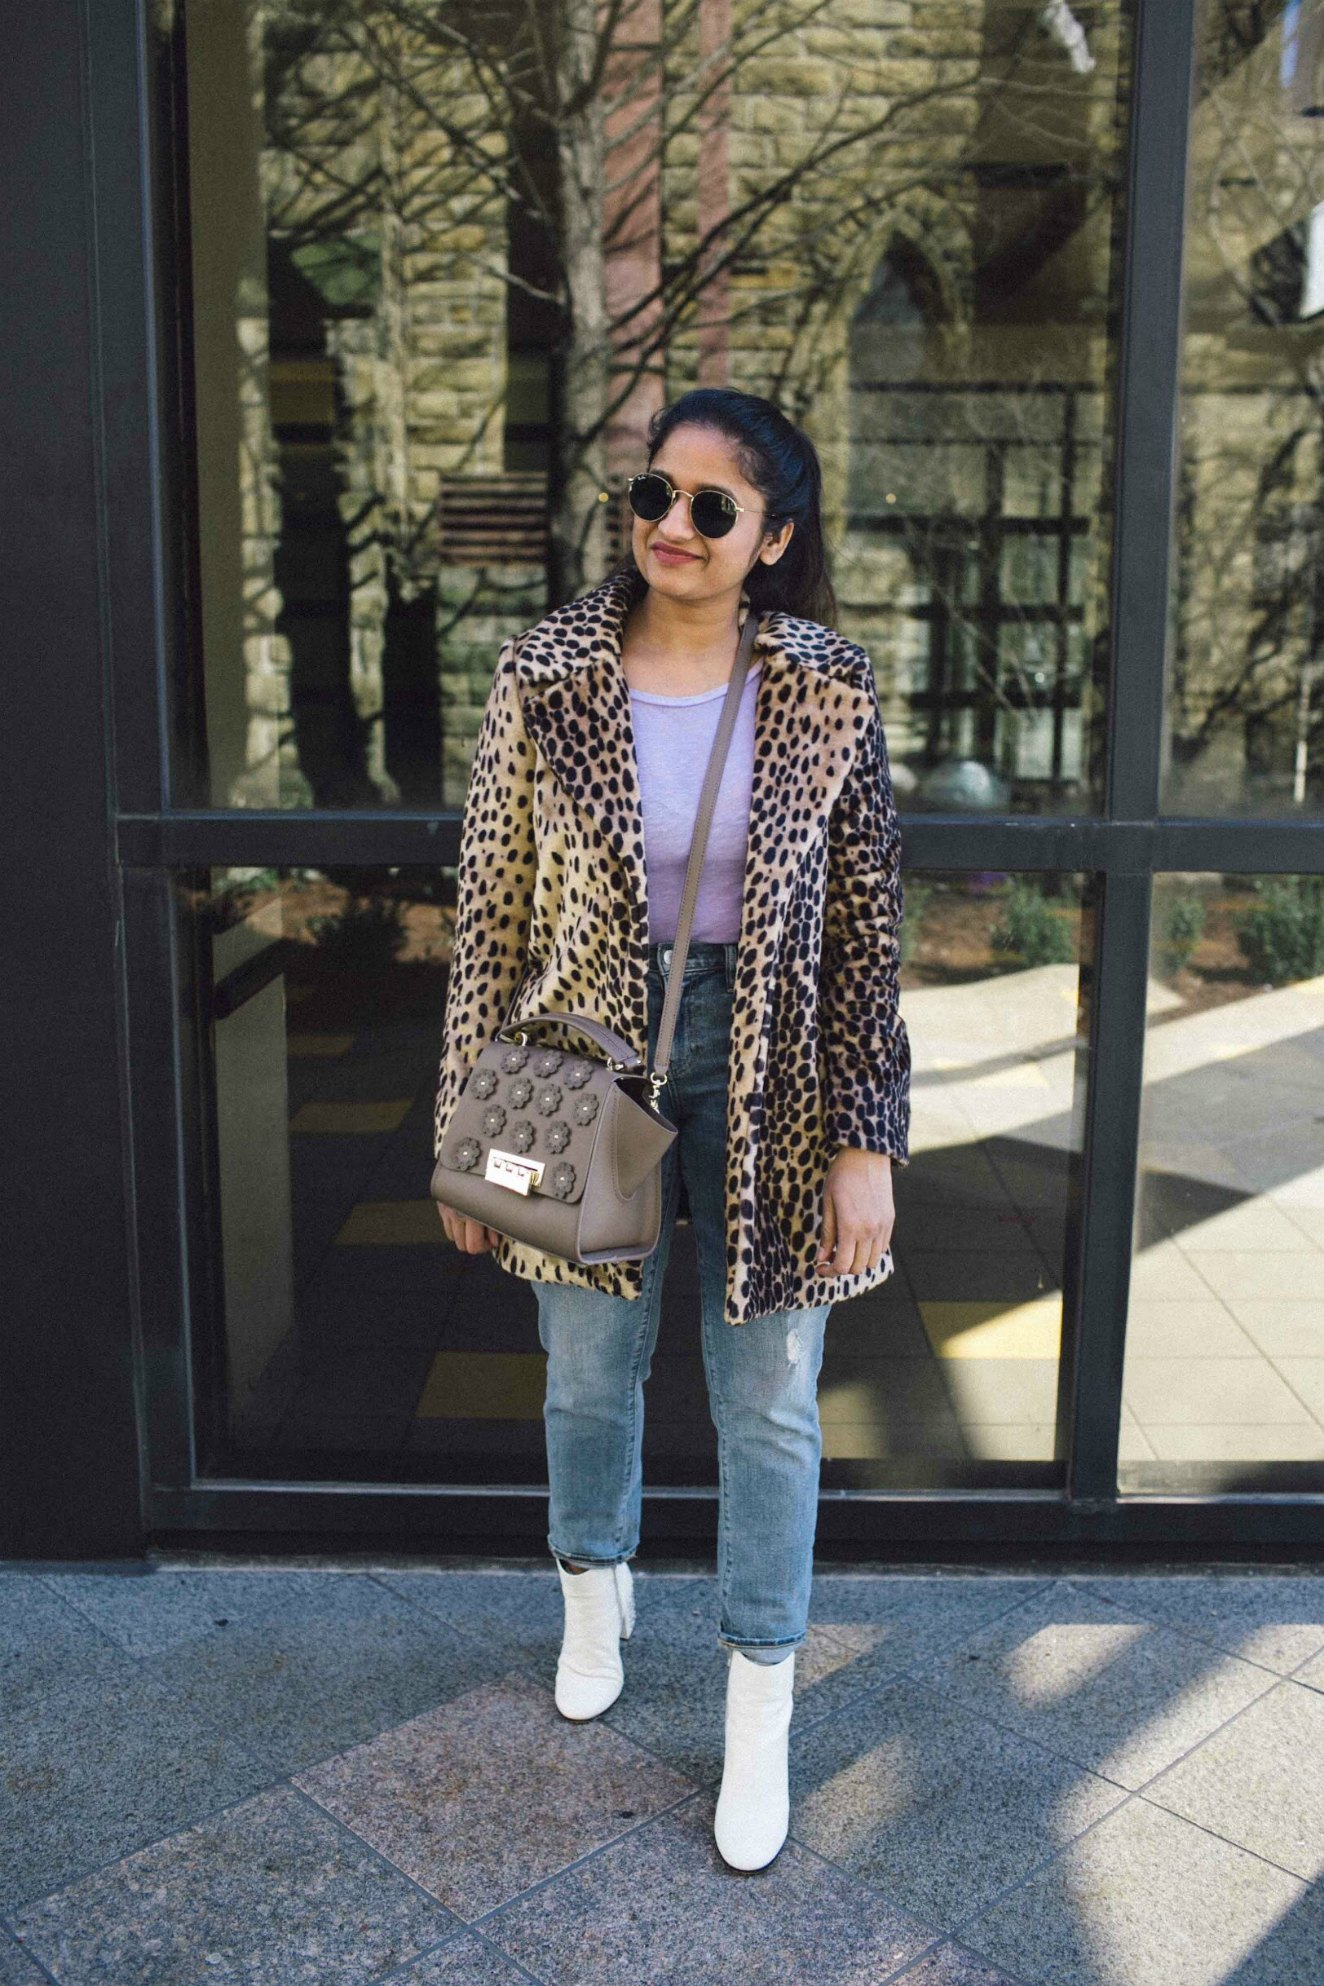 Lifestyle Blog Dreaming Loud sharing how to wear leopard coat in casual ways - Spring Outfit Ideas featured by popular Ohio modest fashion blogger, Dreaming Loud